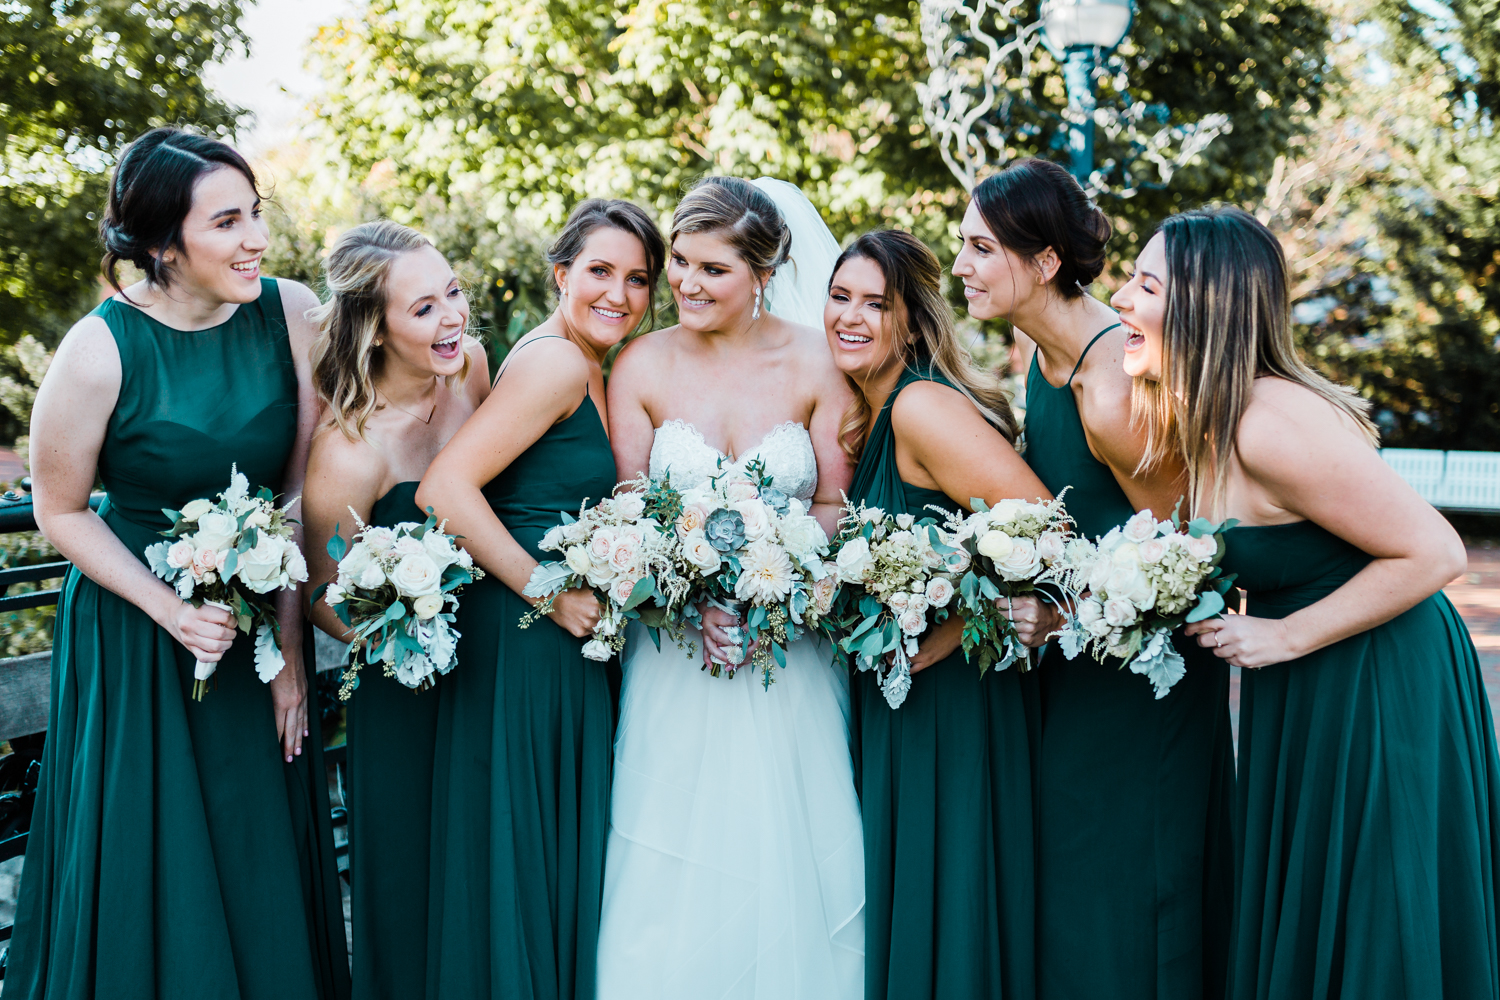 bride and her bridesmaids - Frederick MD wedding photographer and videographer